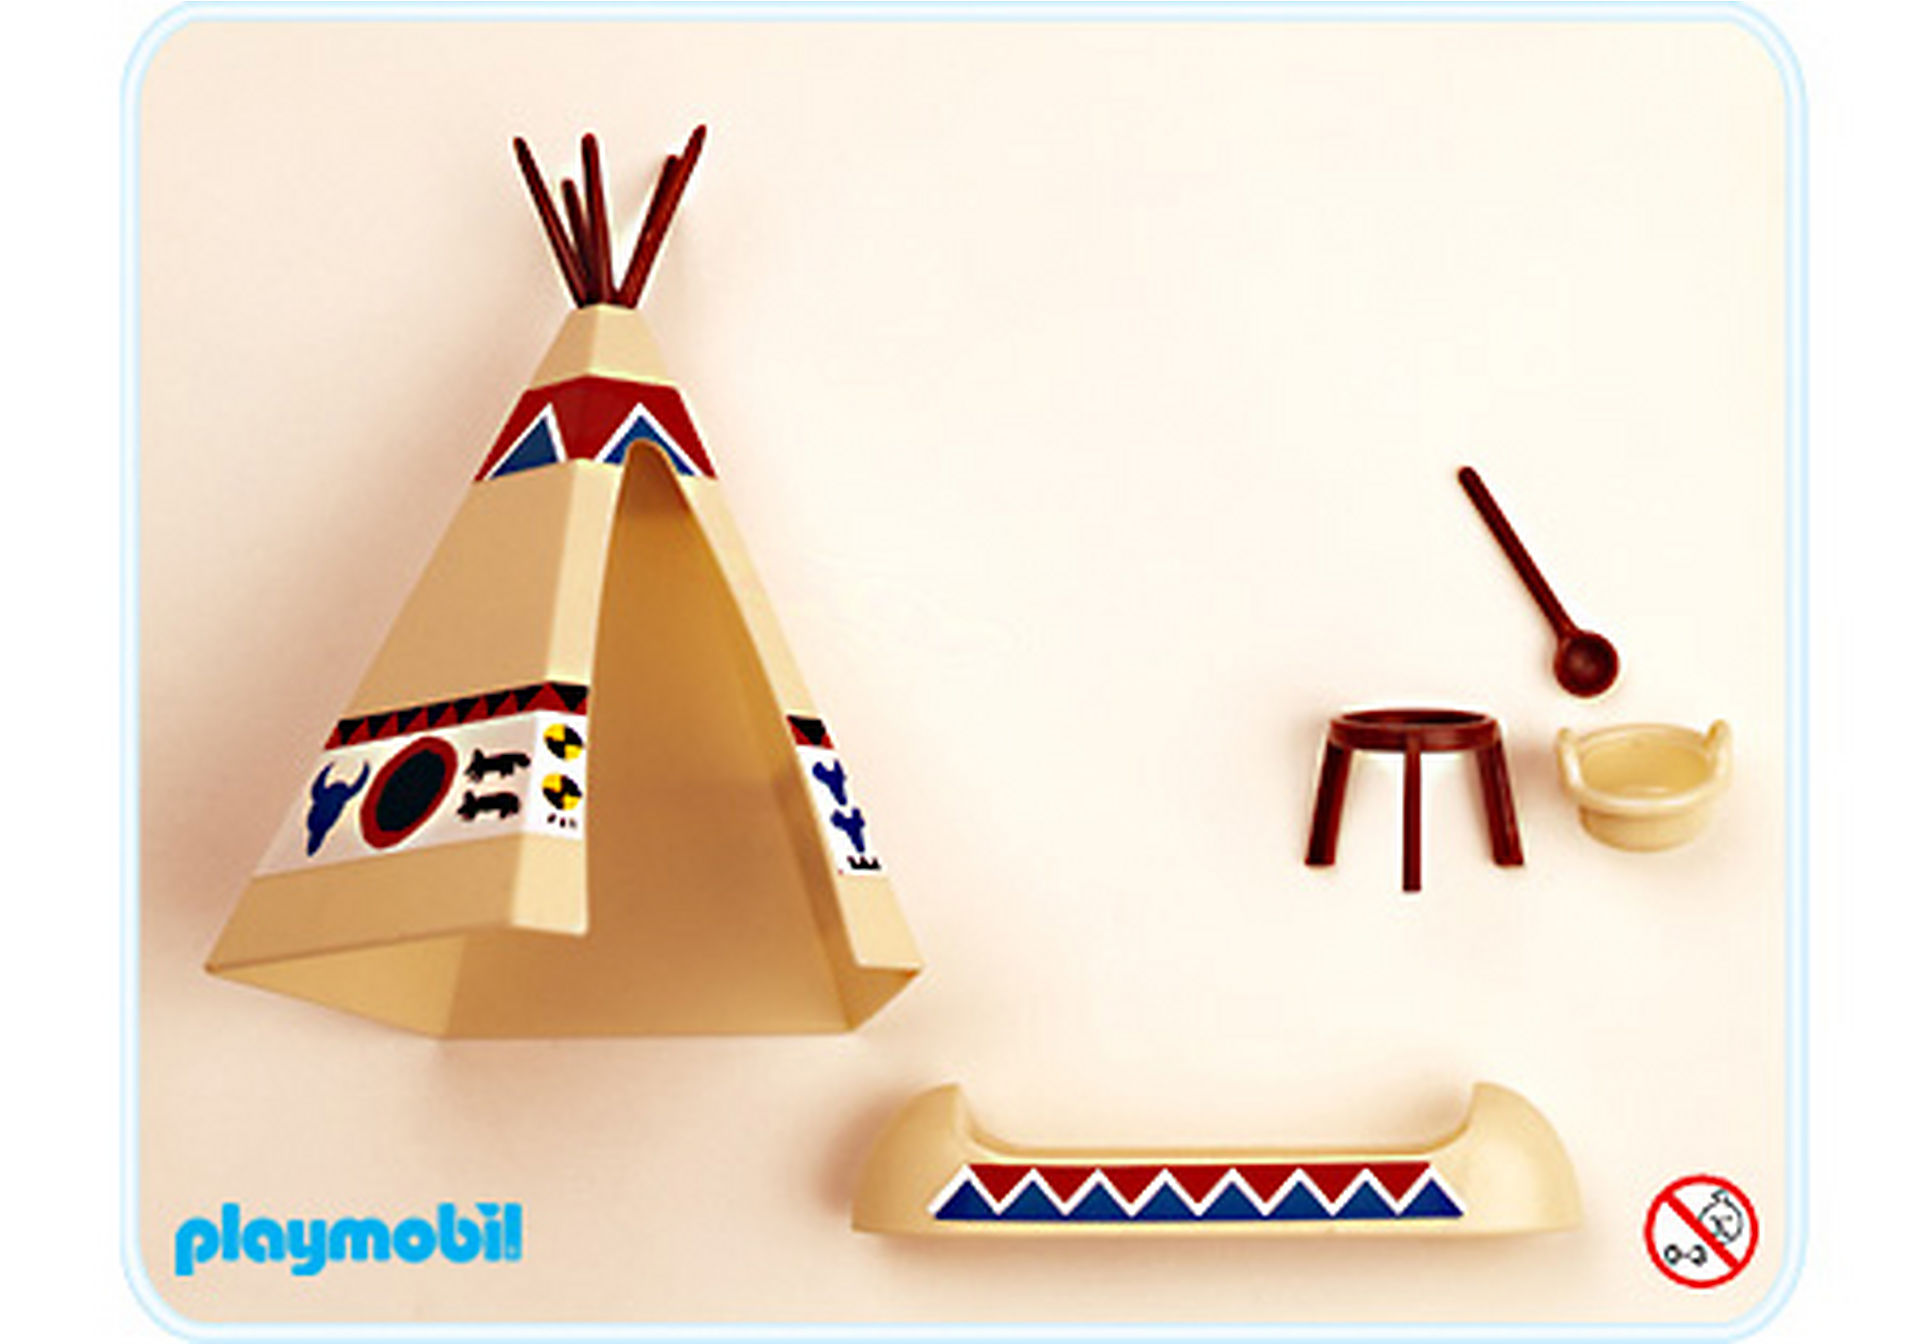 http://media.playmobil.com/i/playmobil/3121-A_product_detail/Tipi